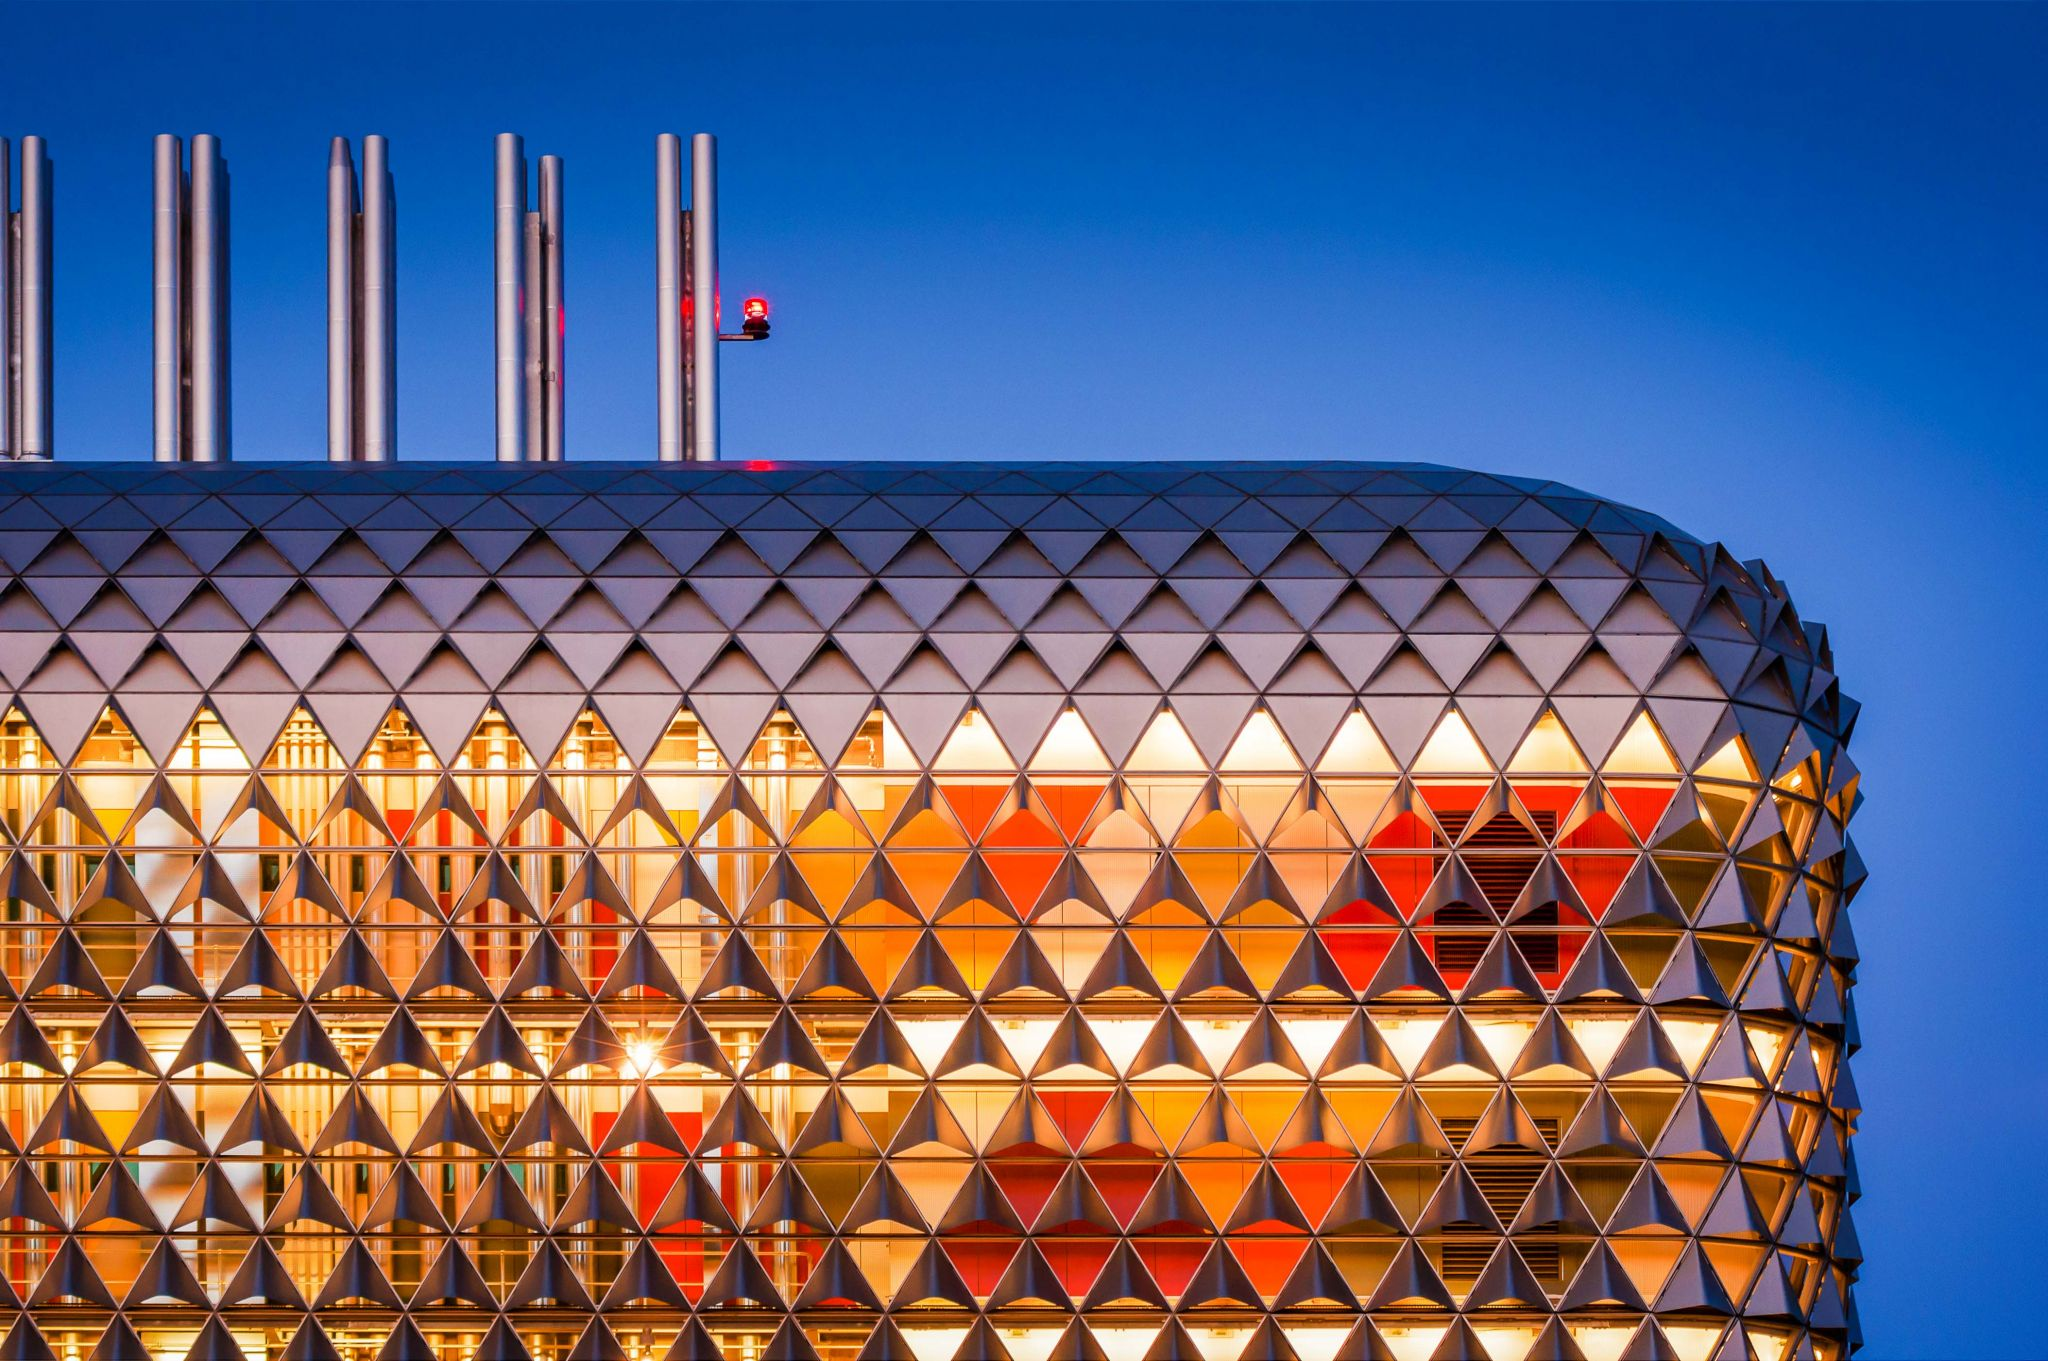 South Australian Health and Medical Research Institute, Australia